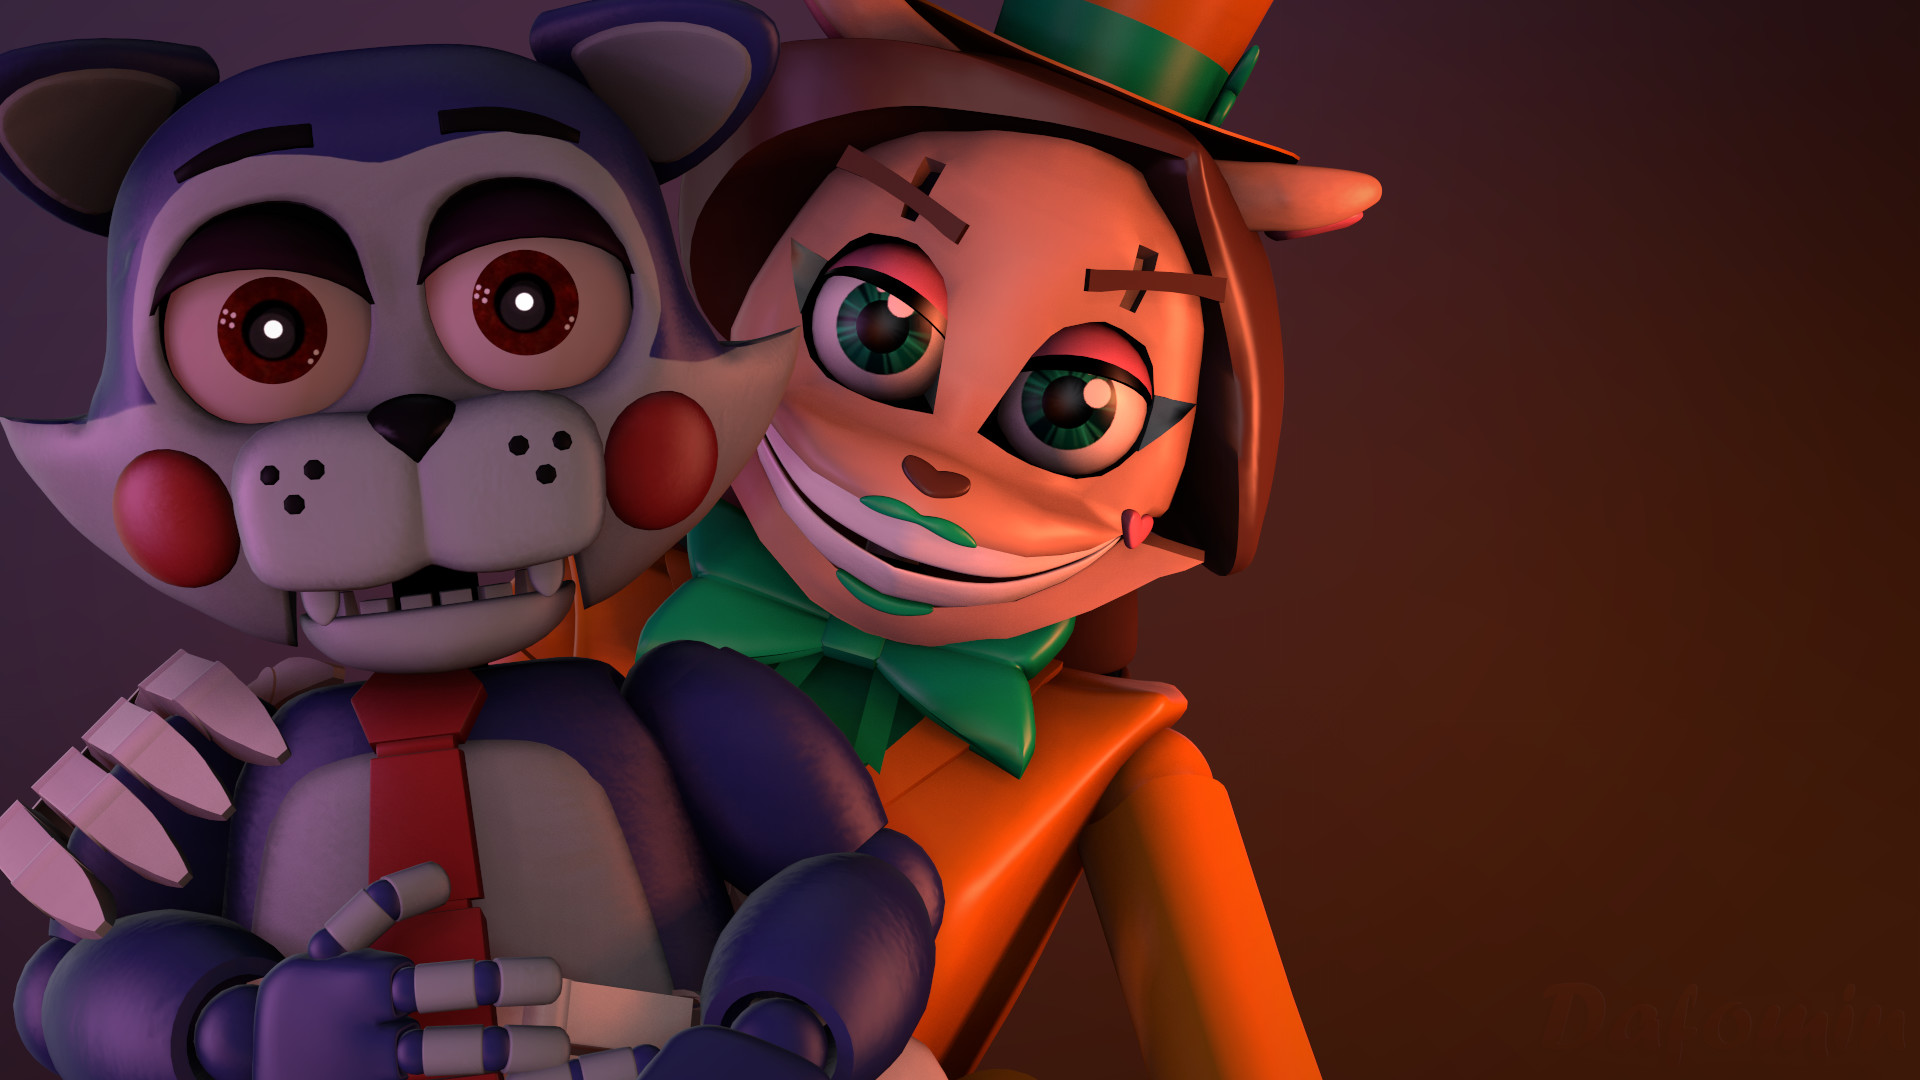 … [FNAF SFM]-Wallpaper Netty and adventure Candy by Dafomin